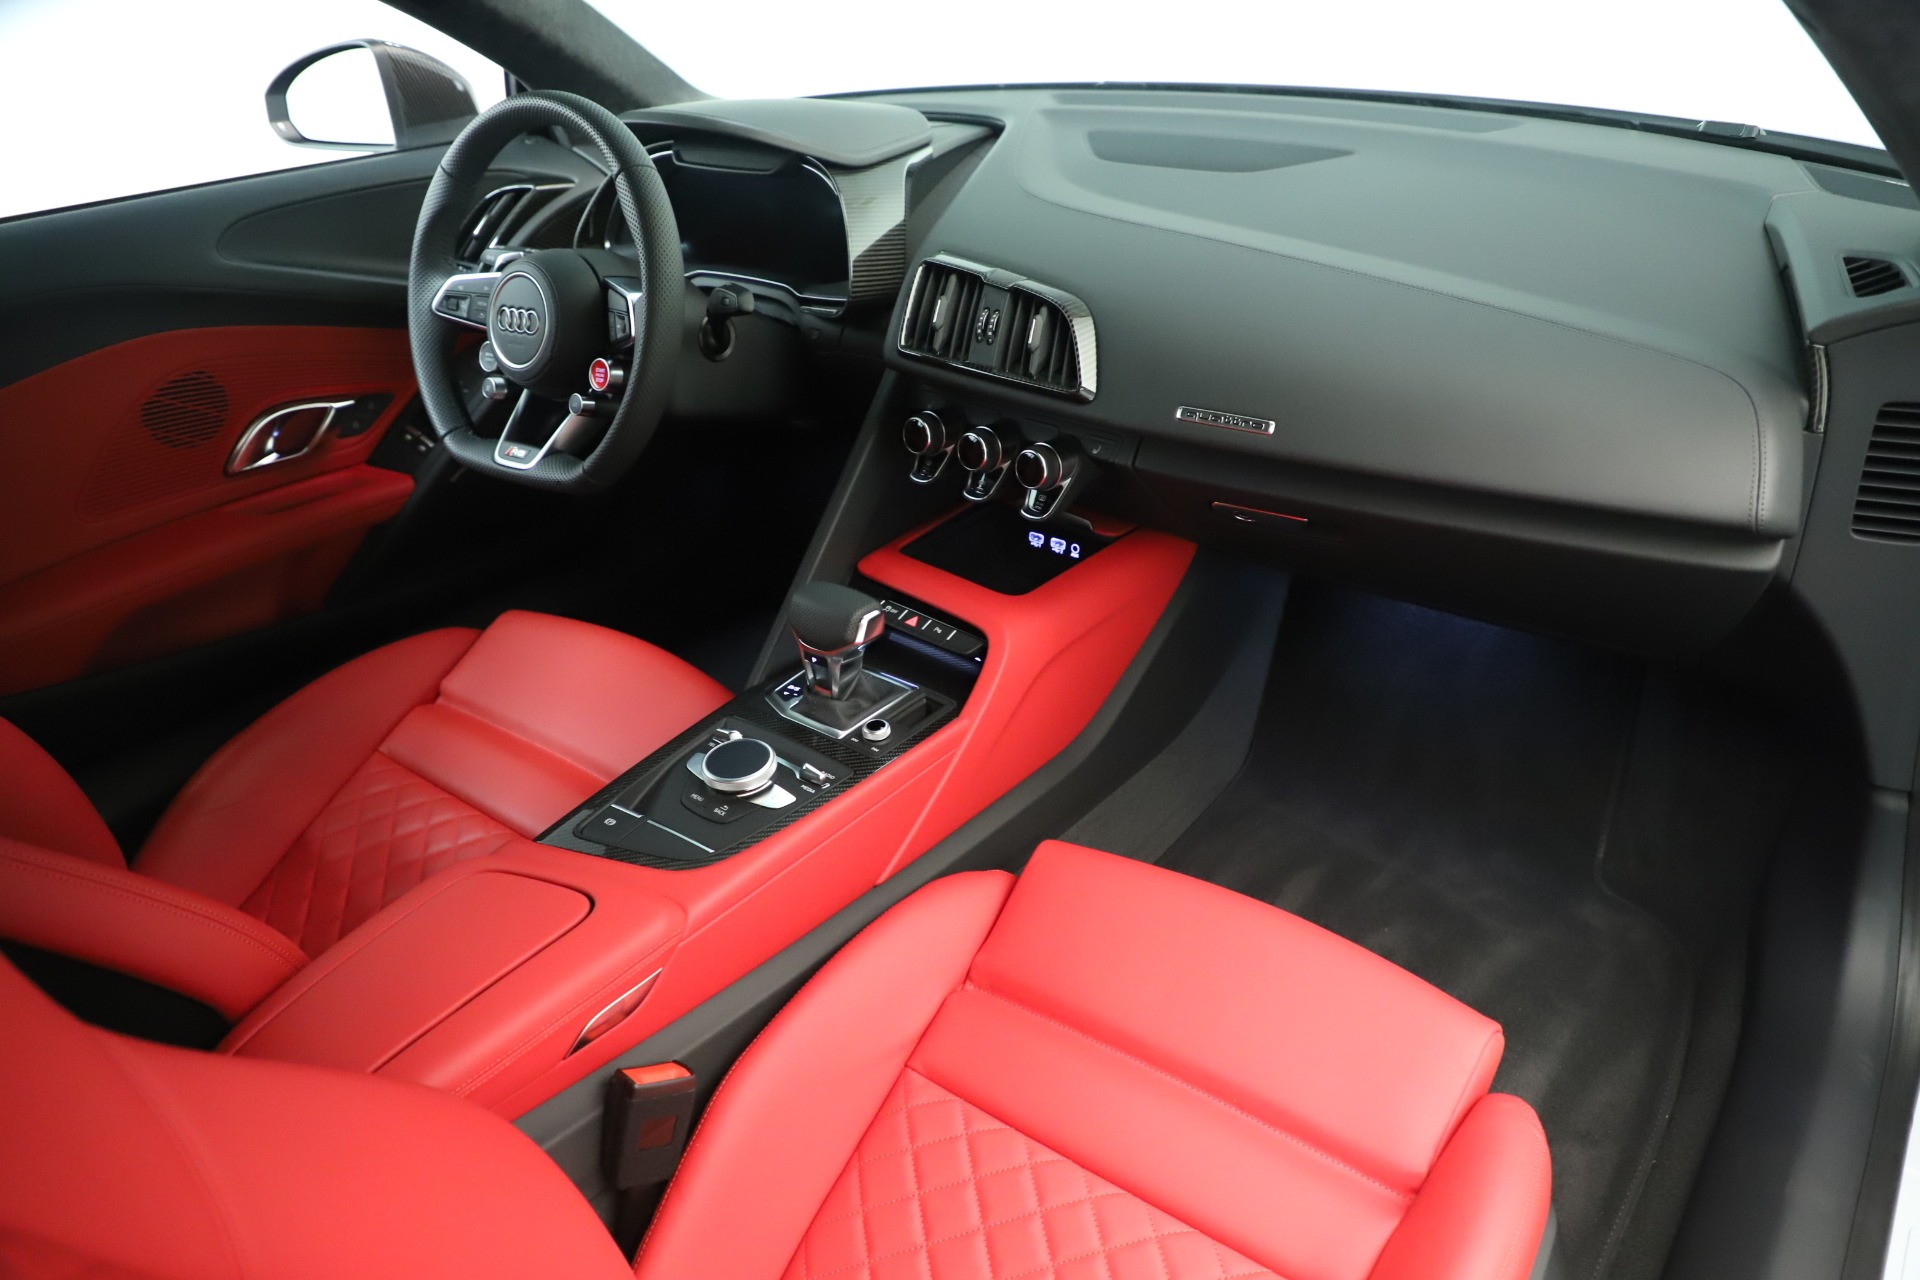 Used 2018 Audi R8 5.2 quattro V10 Plus For Sale In Westport, CT 3360_p18